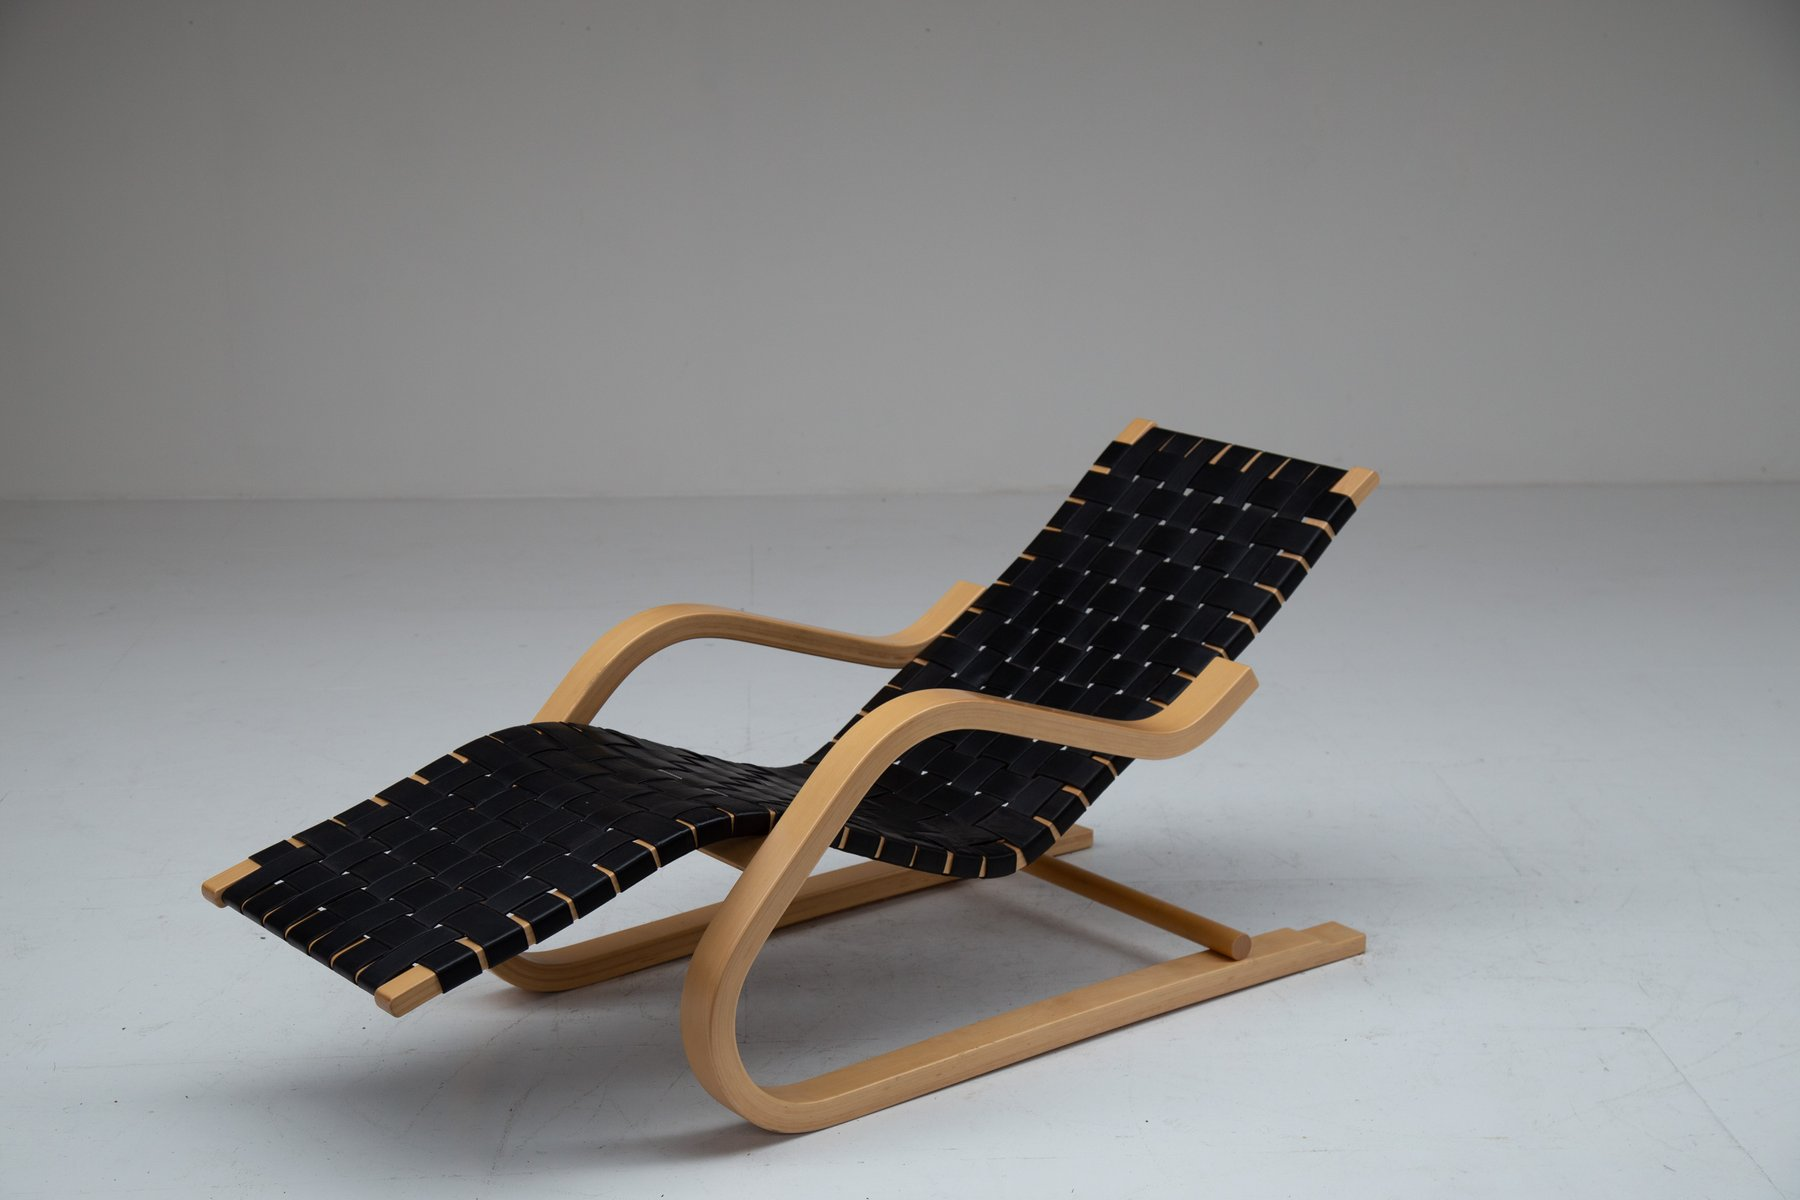 Chaise Lounge By Alvar Aalto For Artek 1940s For Sale At Pamono